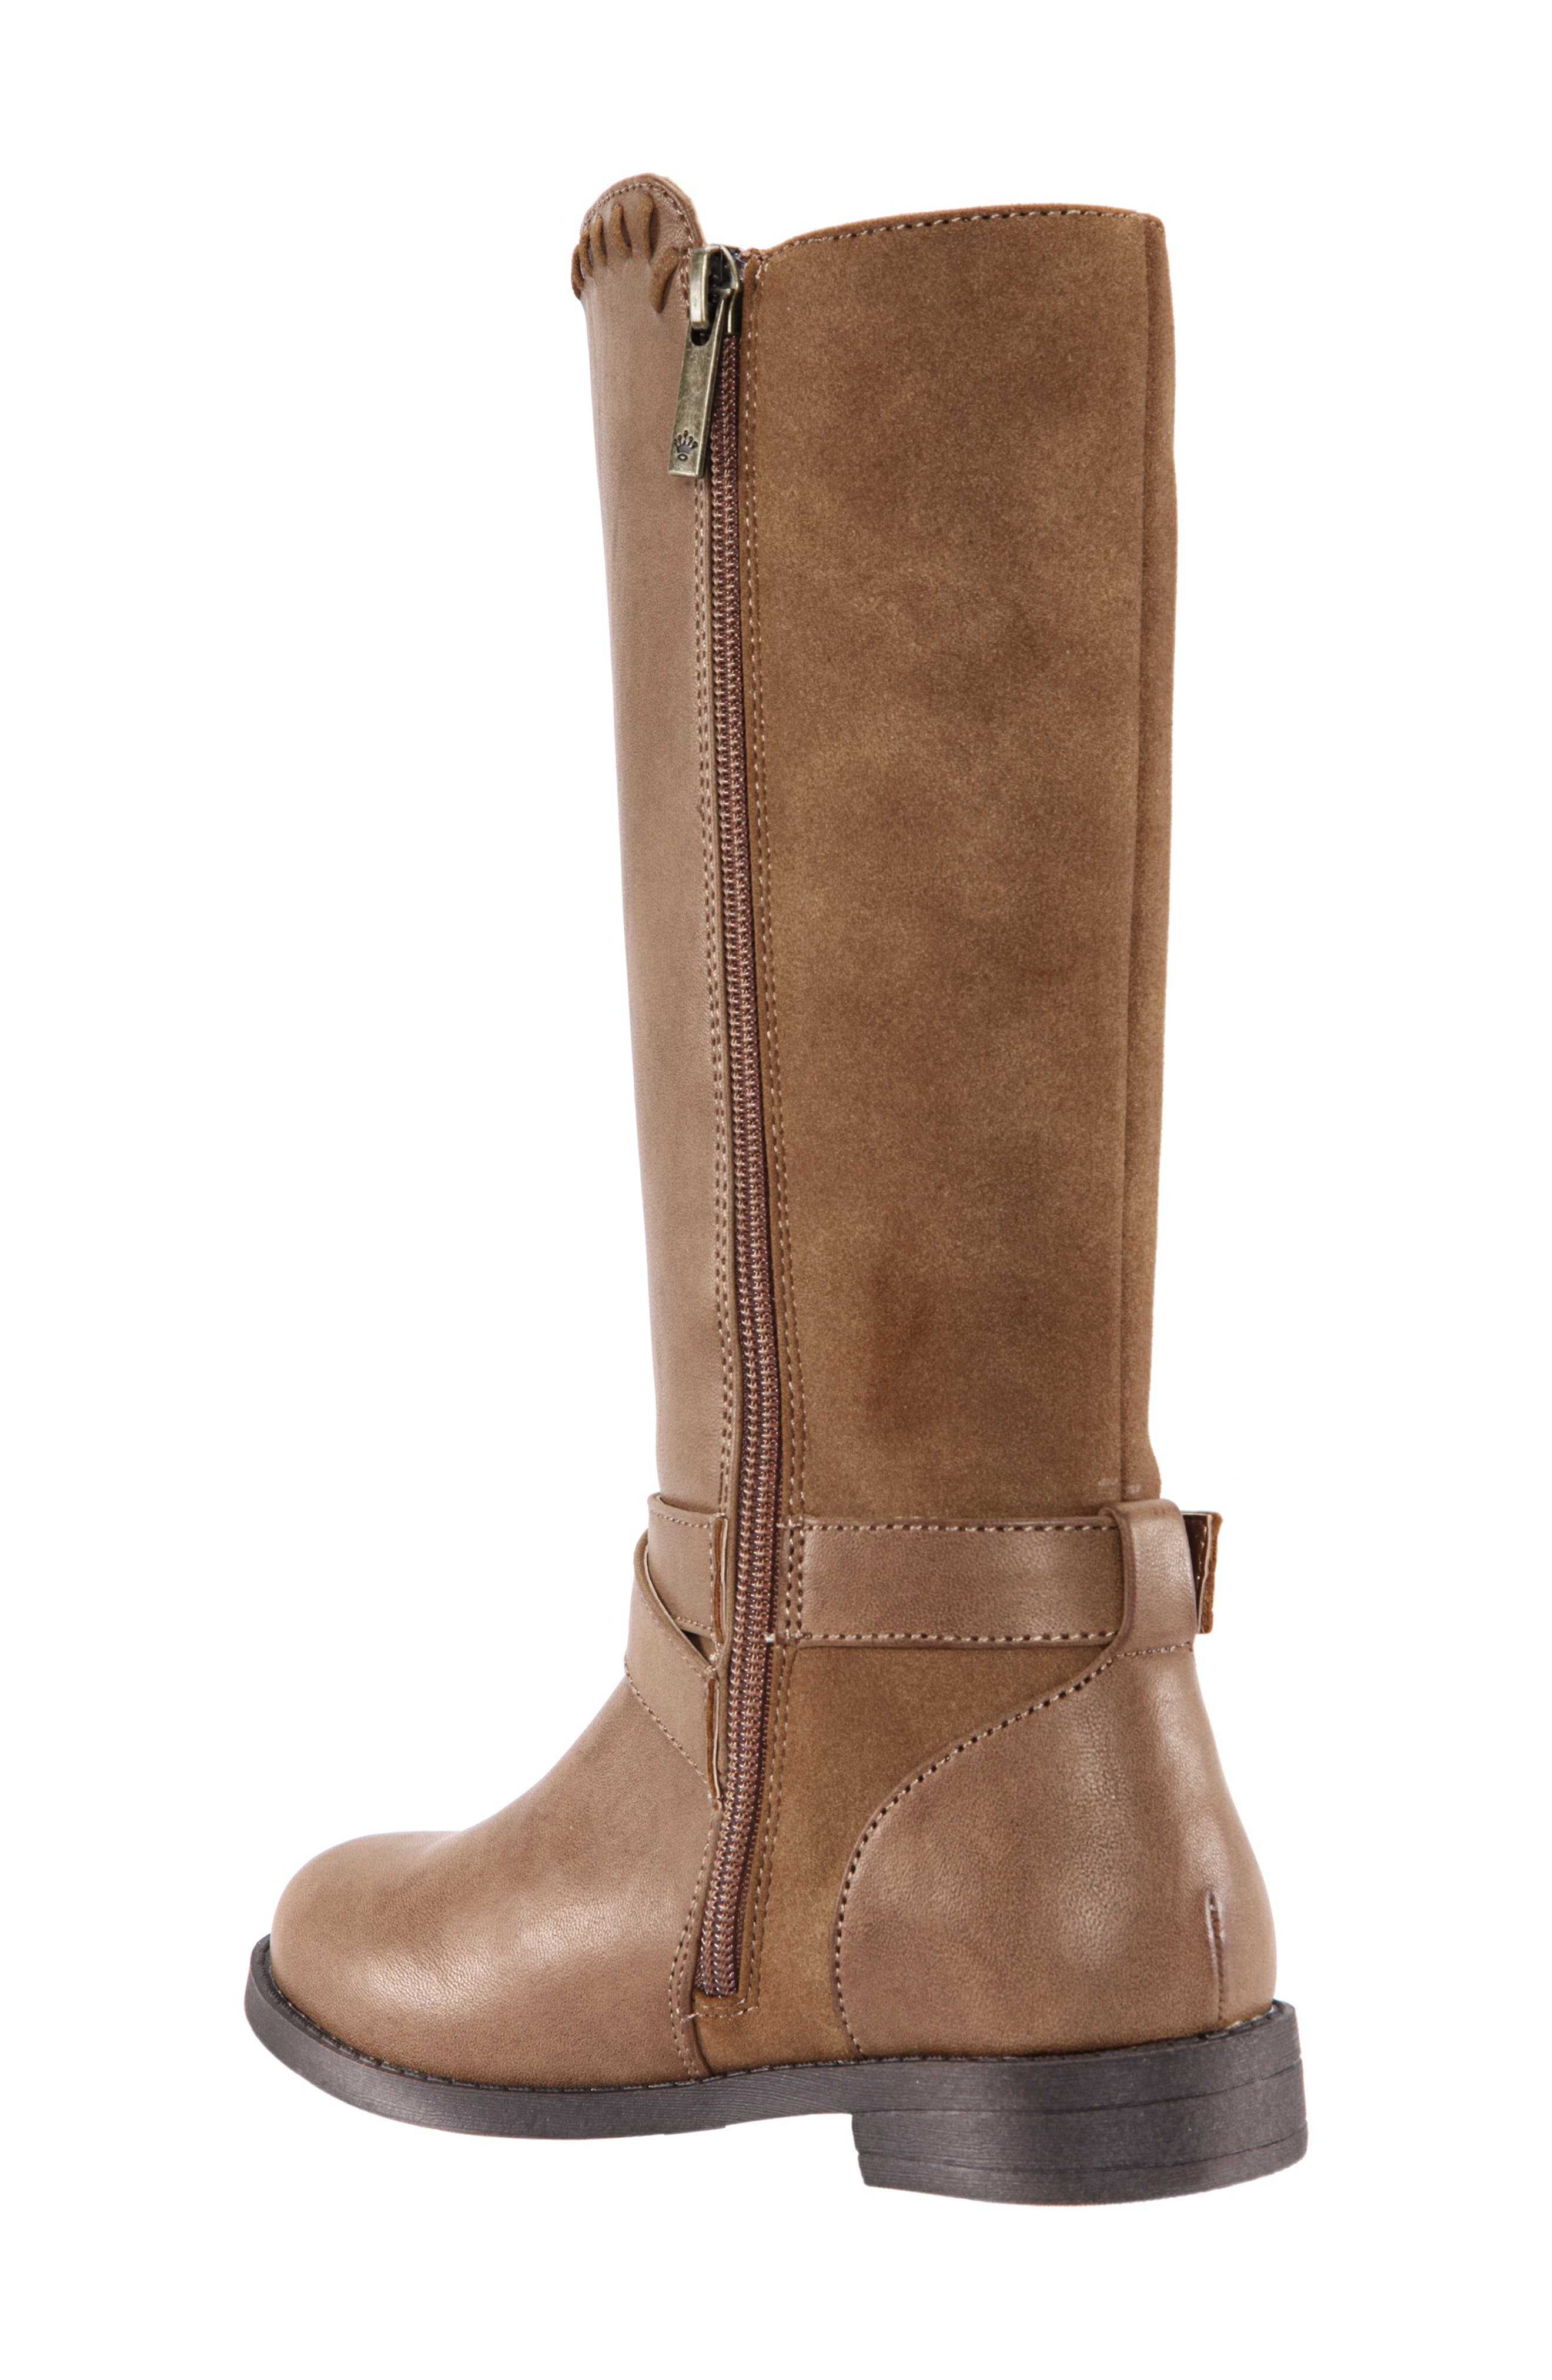 Jeanie Riding Boot,                             Alternate thumbnail 2, color,                             SADDLE BURNISHED